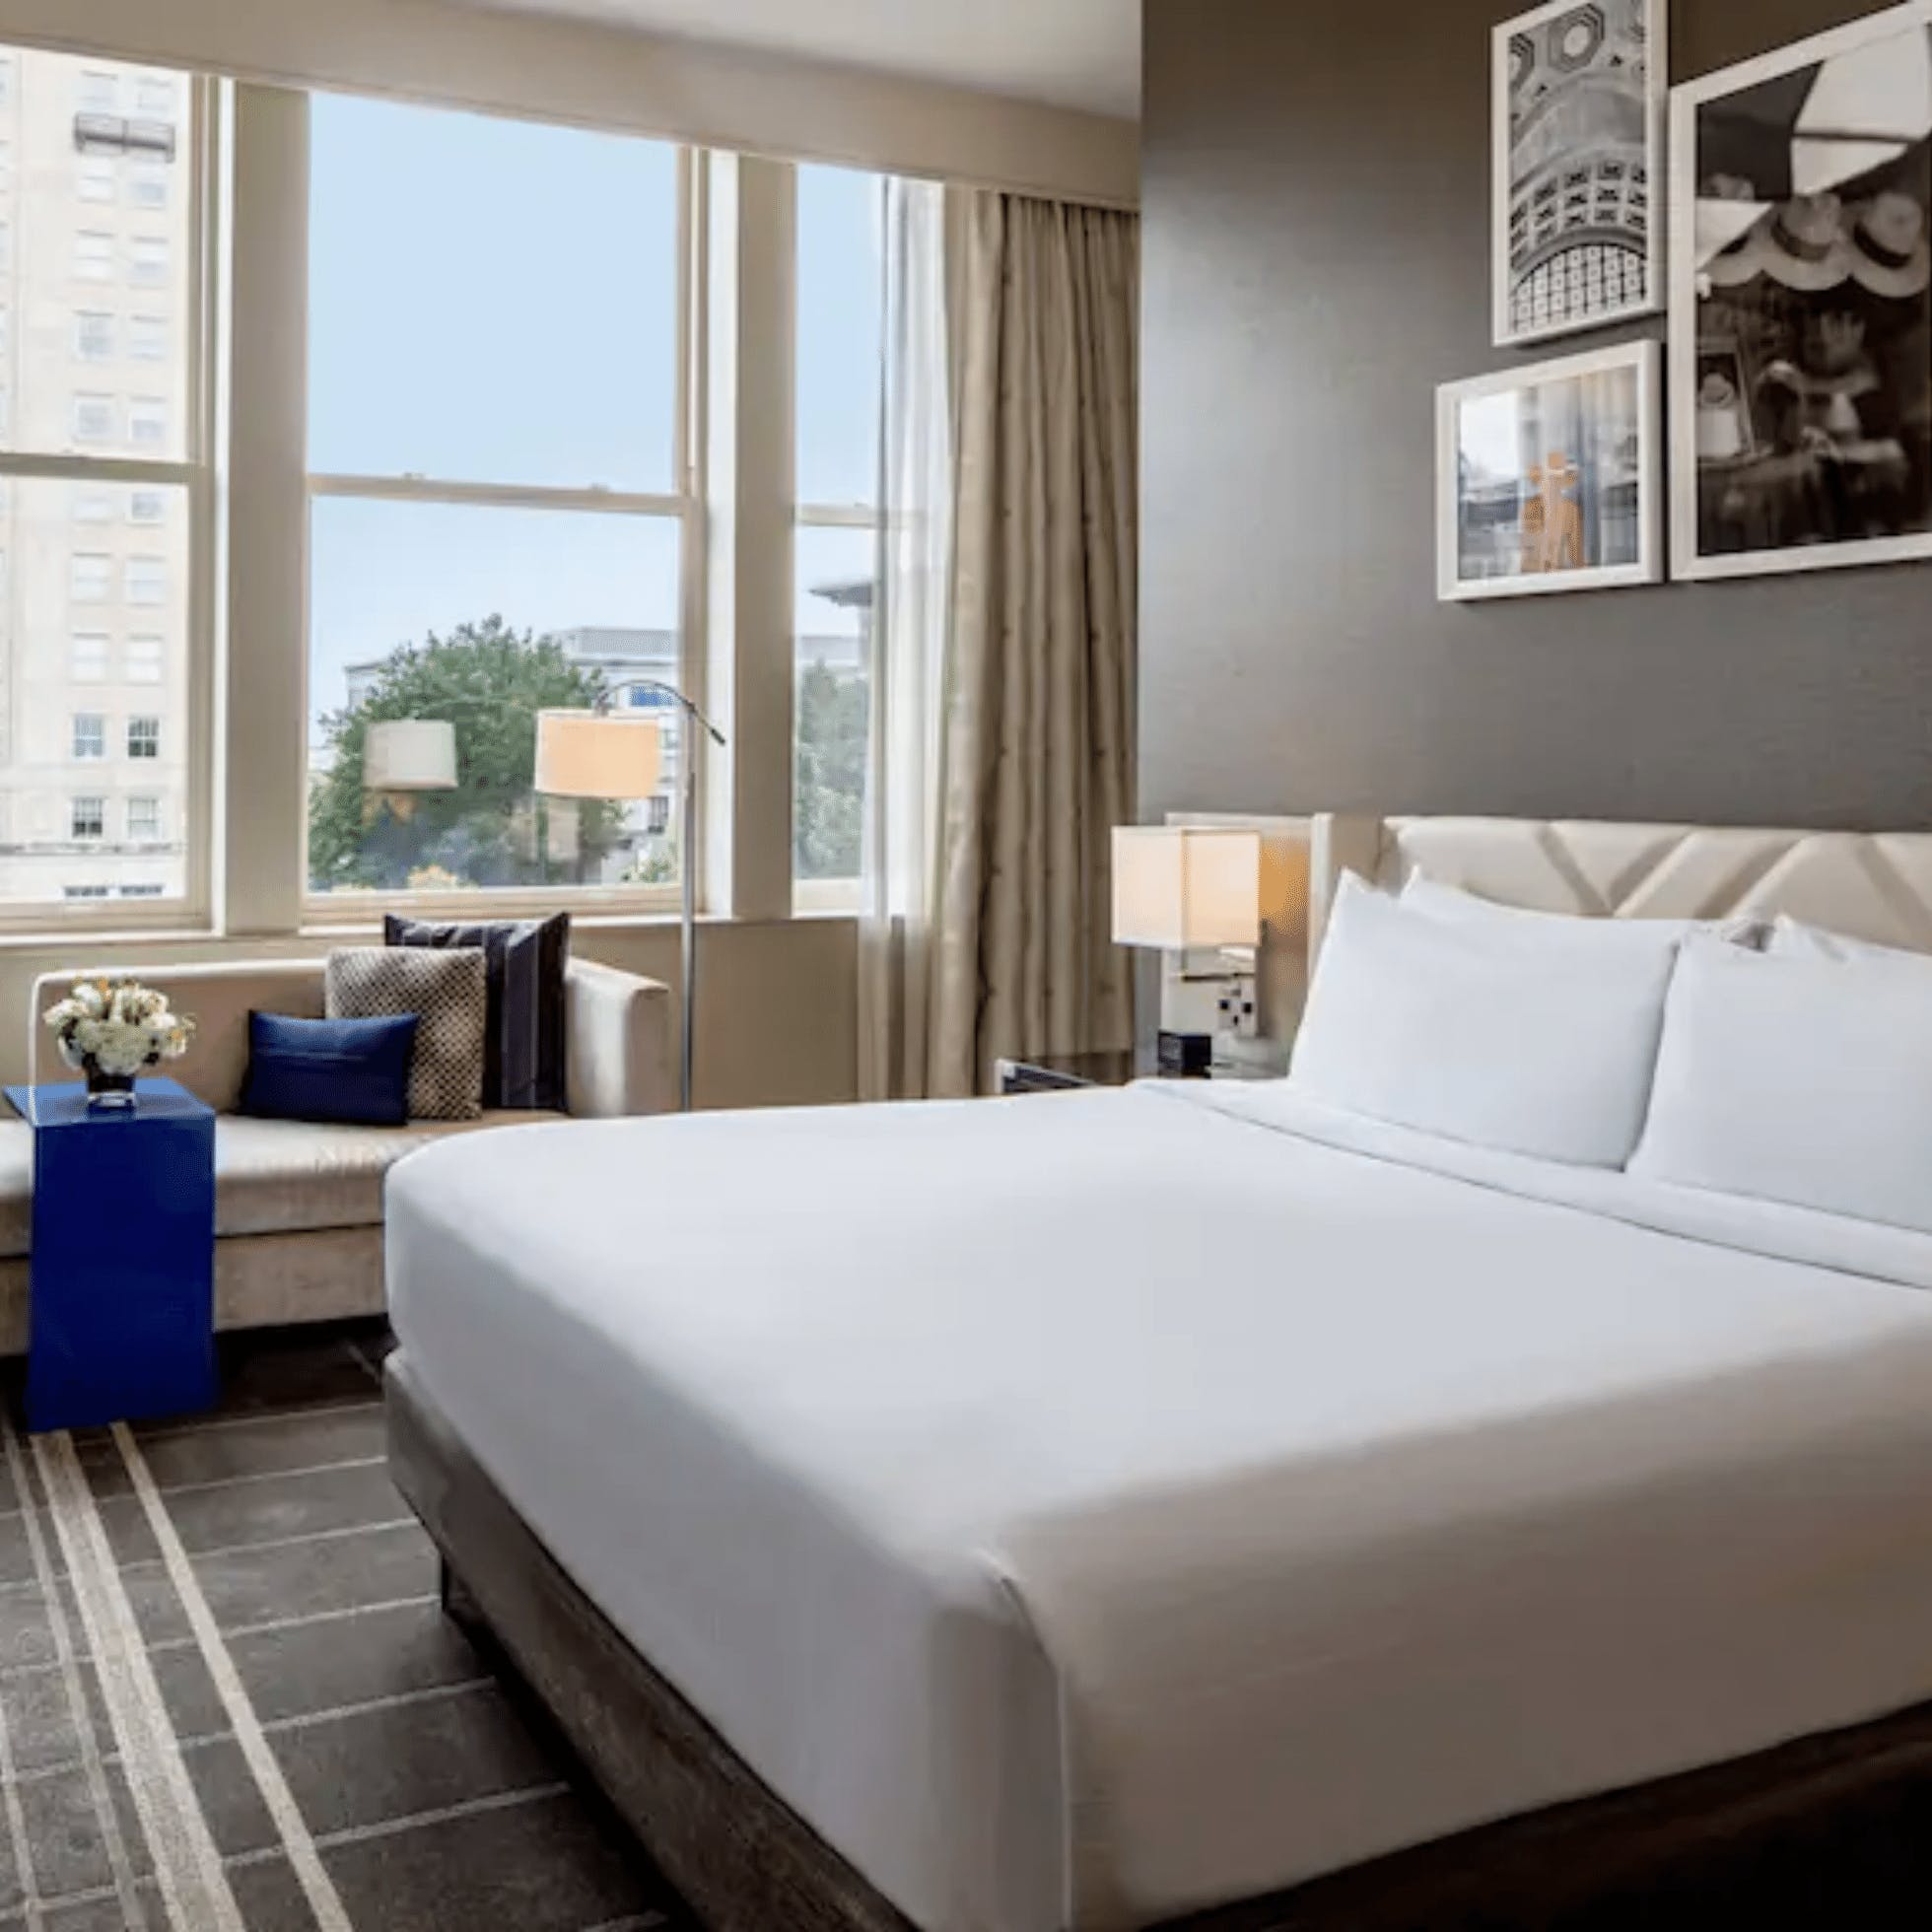 The 15 Best Hotels in Downtown Richmond